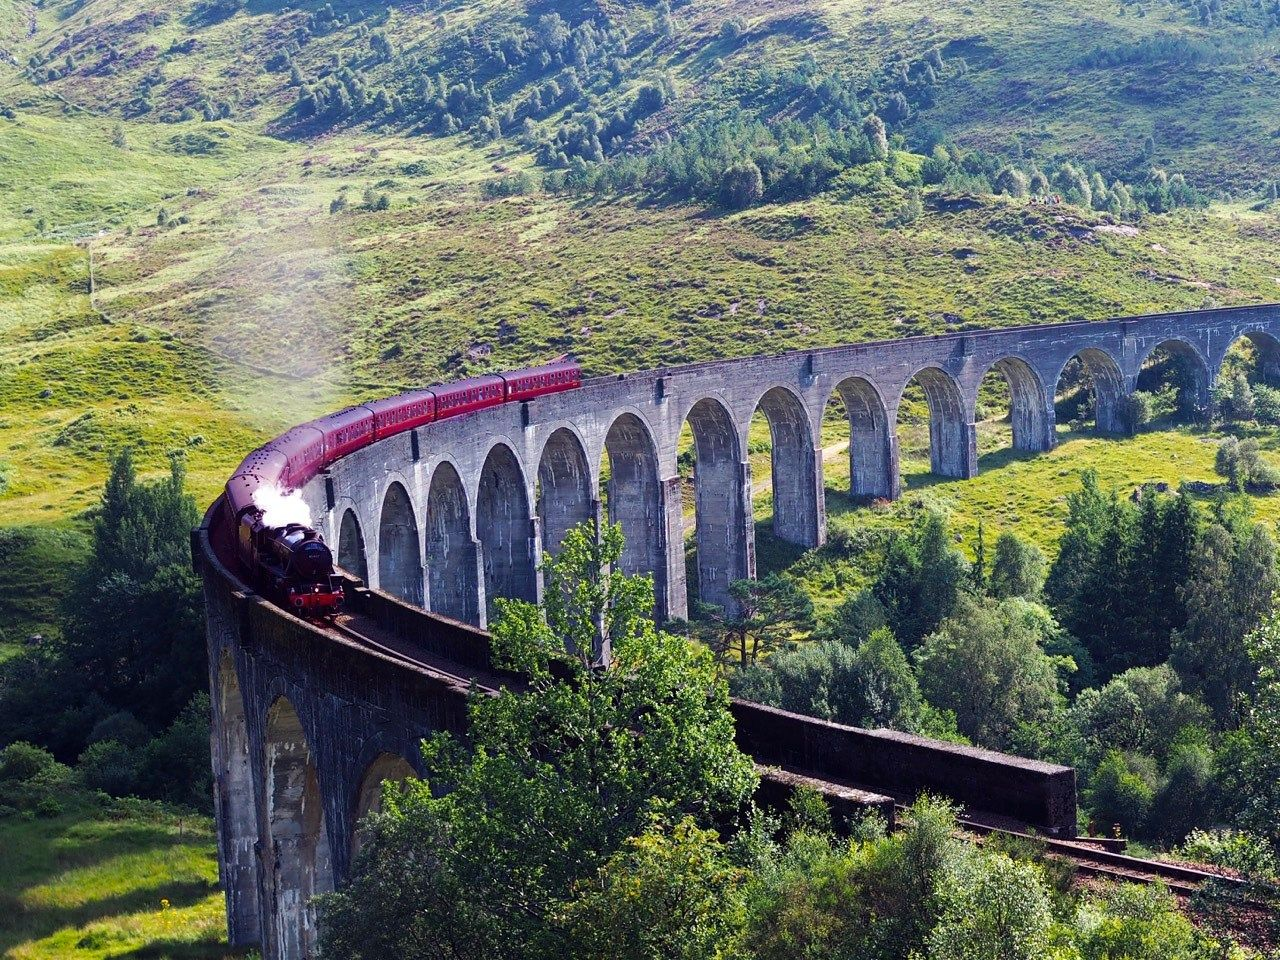 Riding The Harry Potter Train In Scotland Is Just As Epic As It Sounds To Europe And Beyond Harry Potter Train London To Scotland Day Trips From London